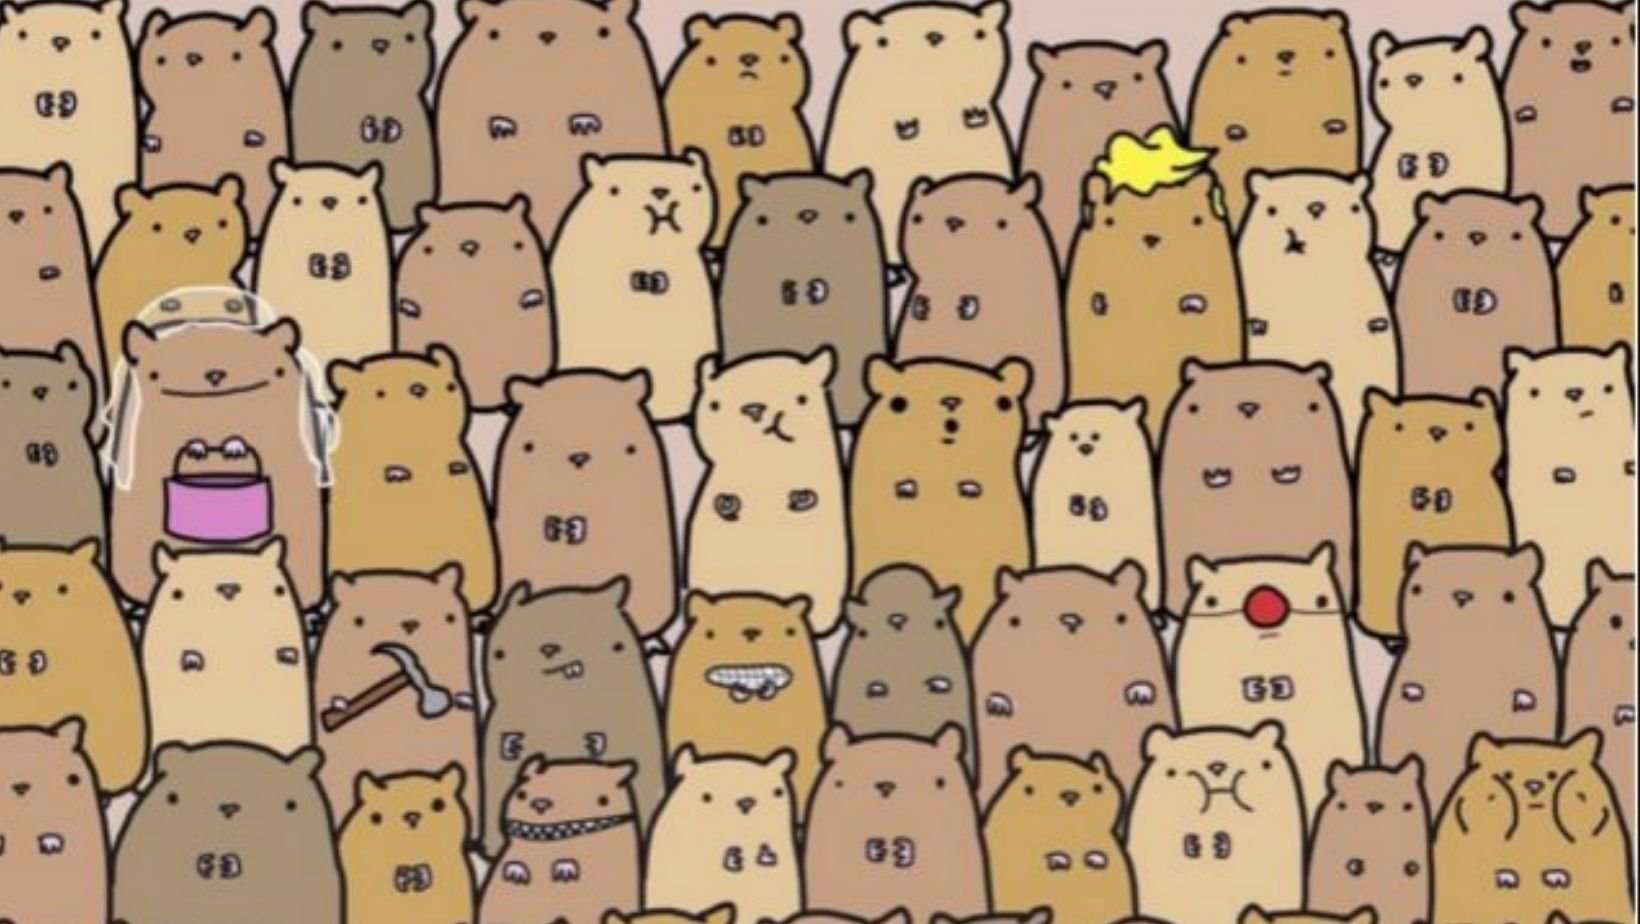 cover 7.jpg?resize=412,232 - There's A Sneaky Potato Hiding In These Adorable Hamsters, Can You Find It?